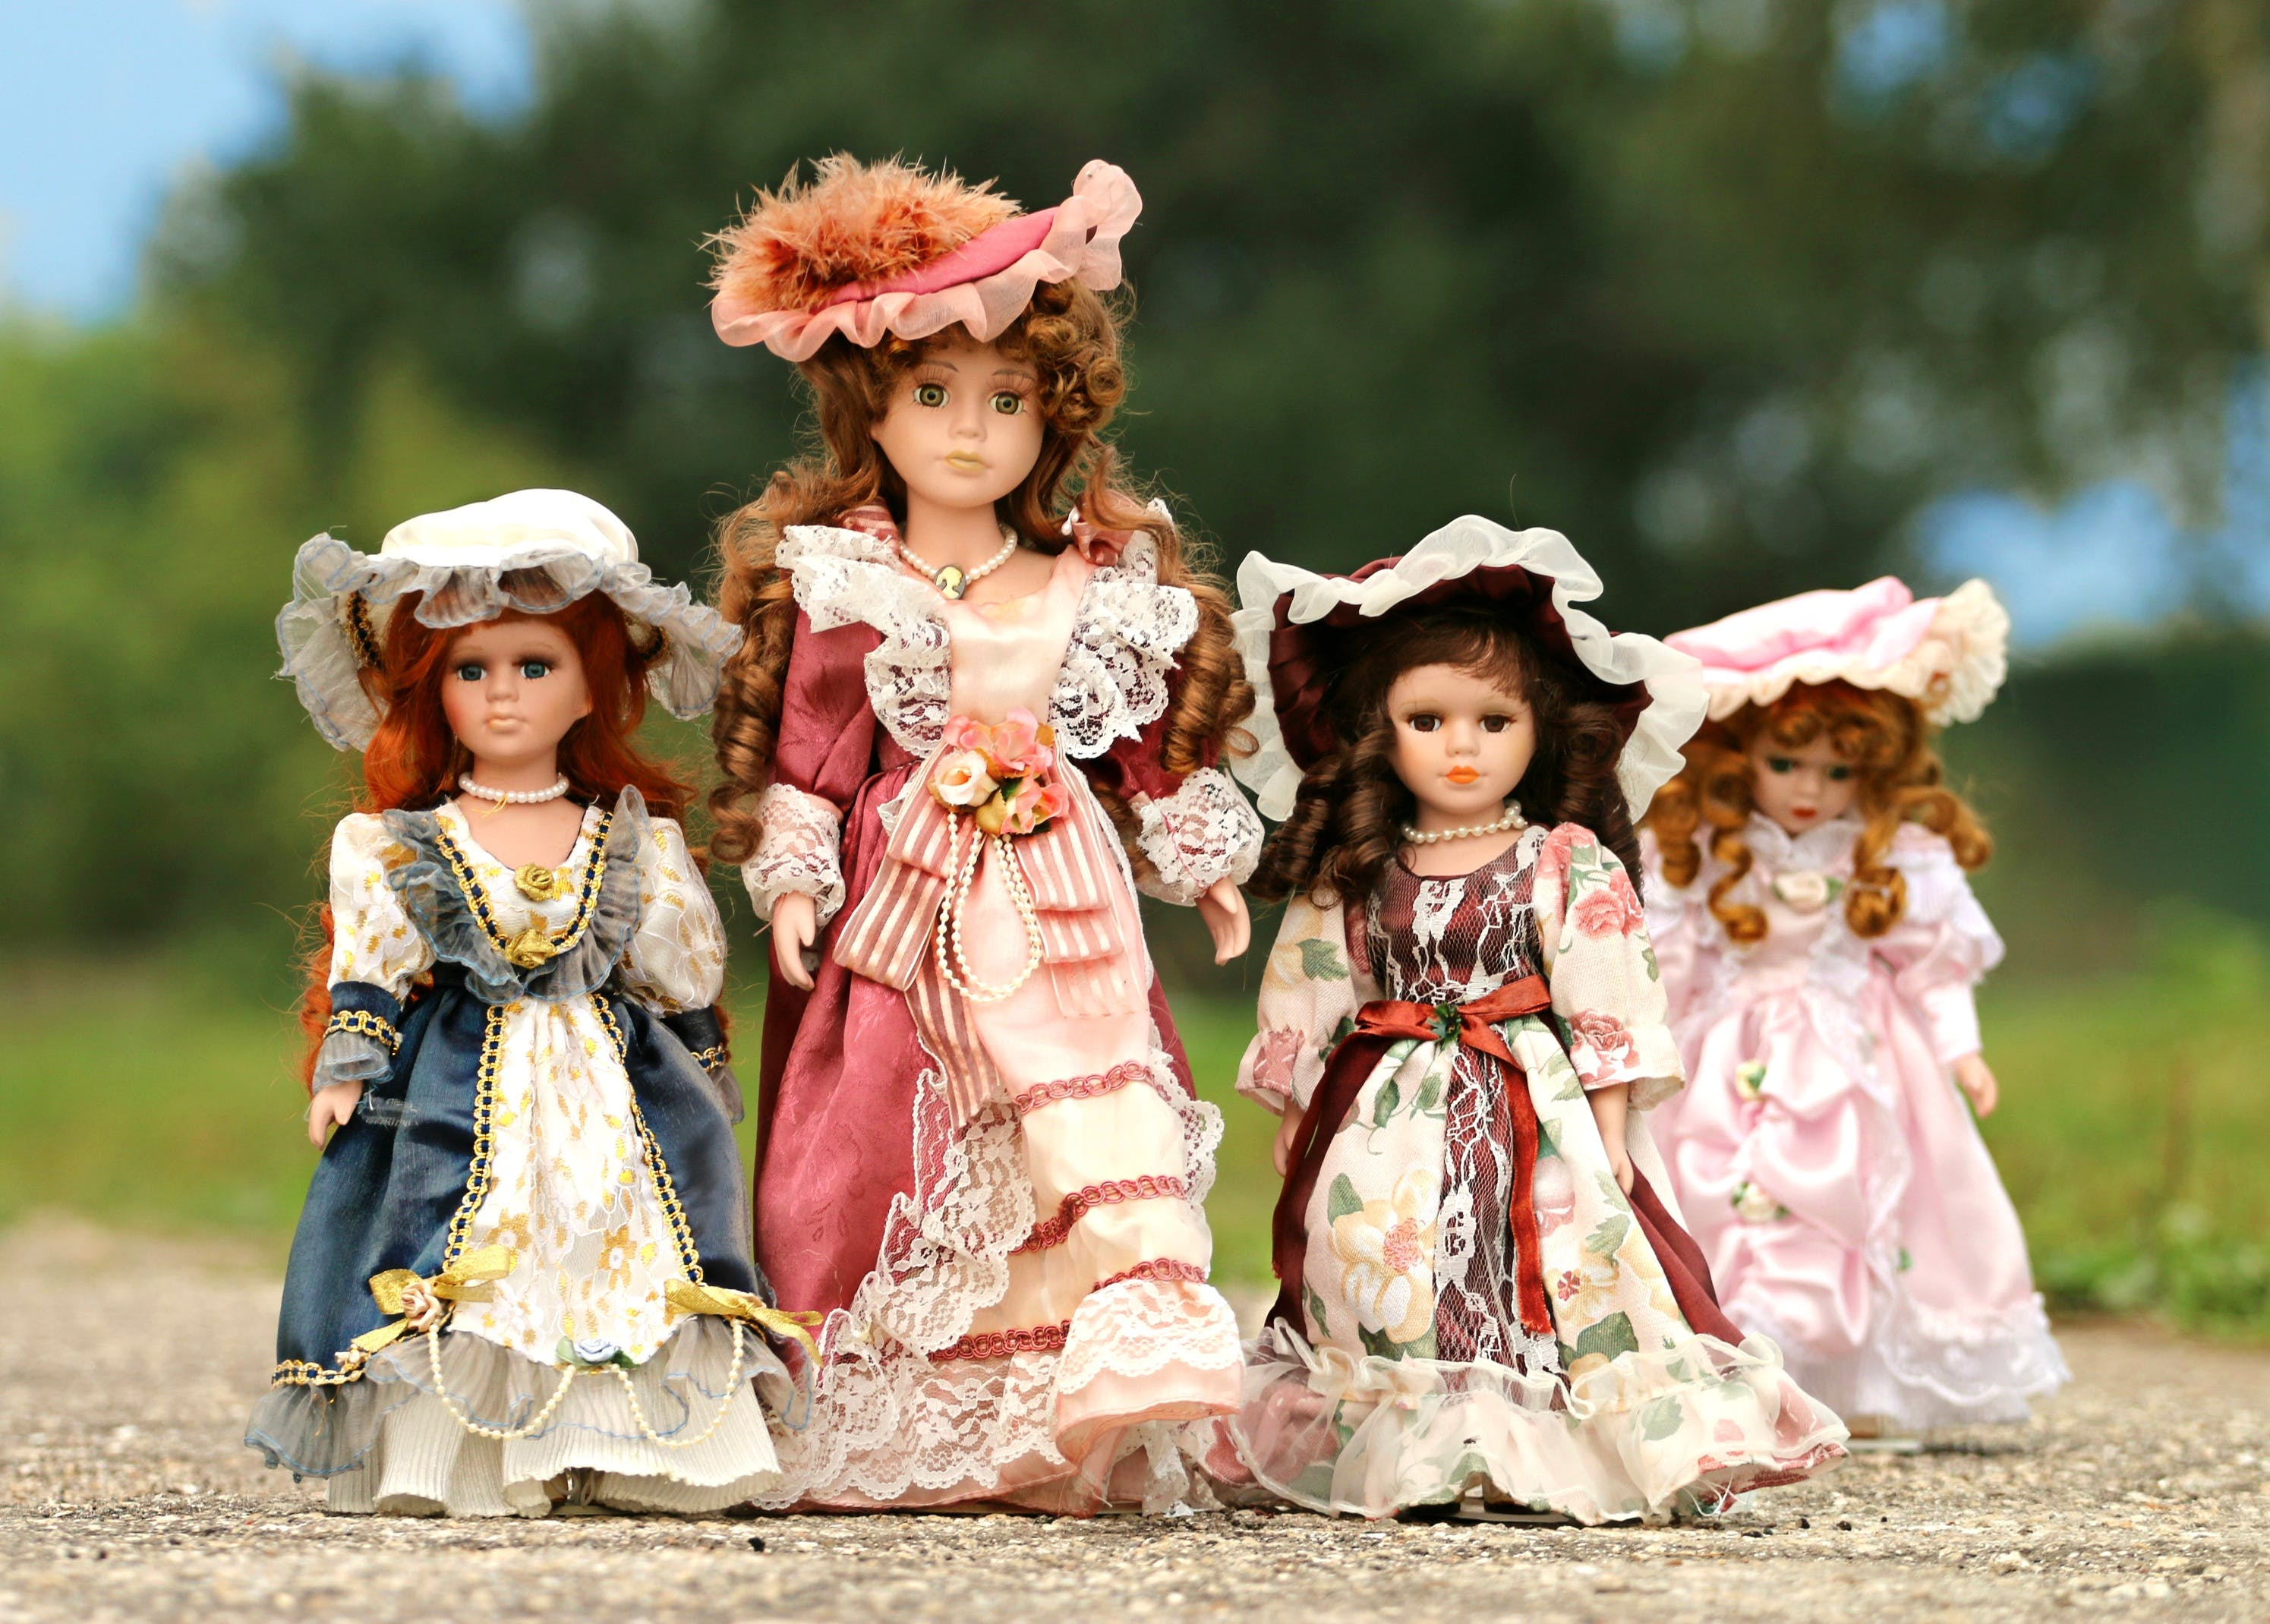 Red and White Dressed Porcelain Doll